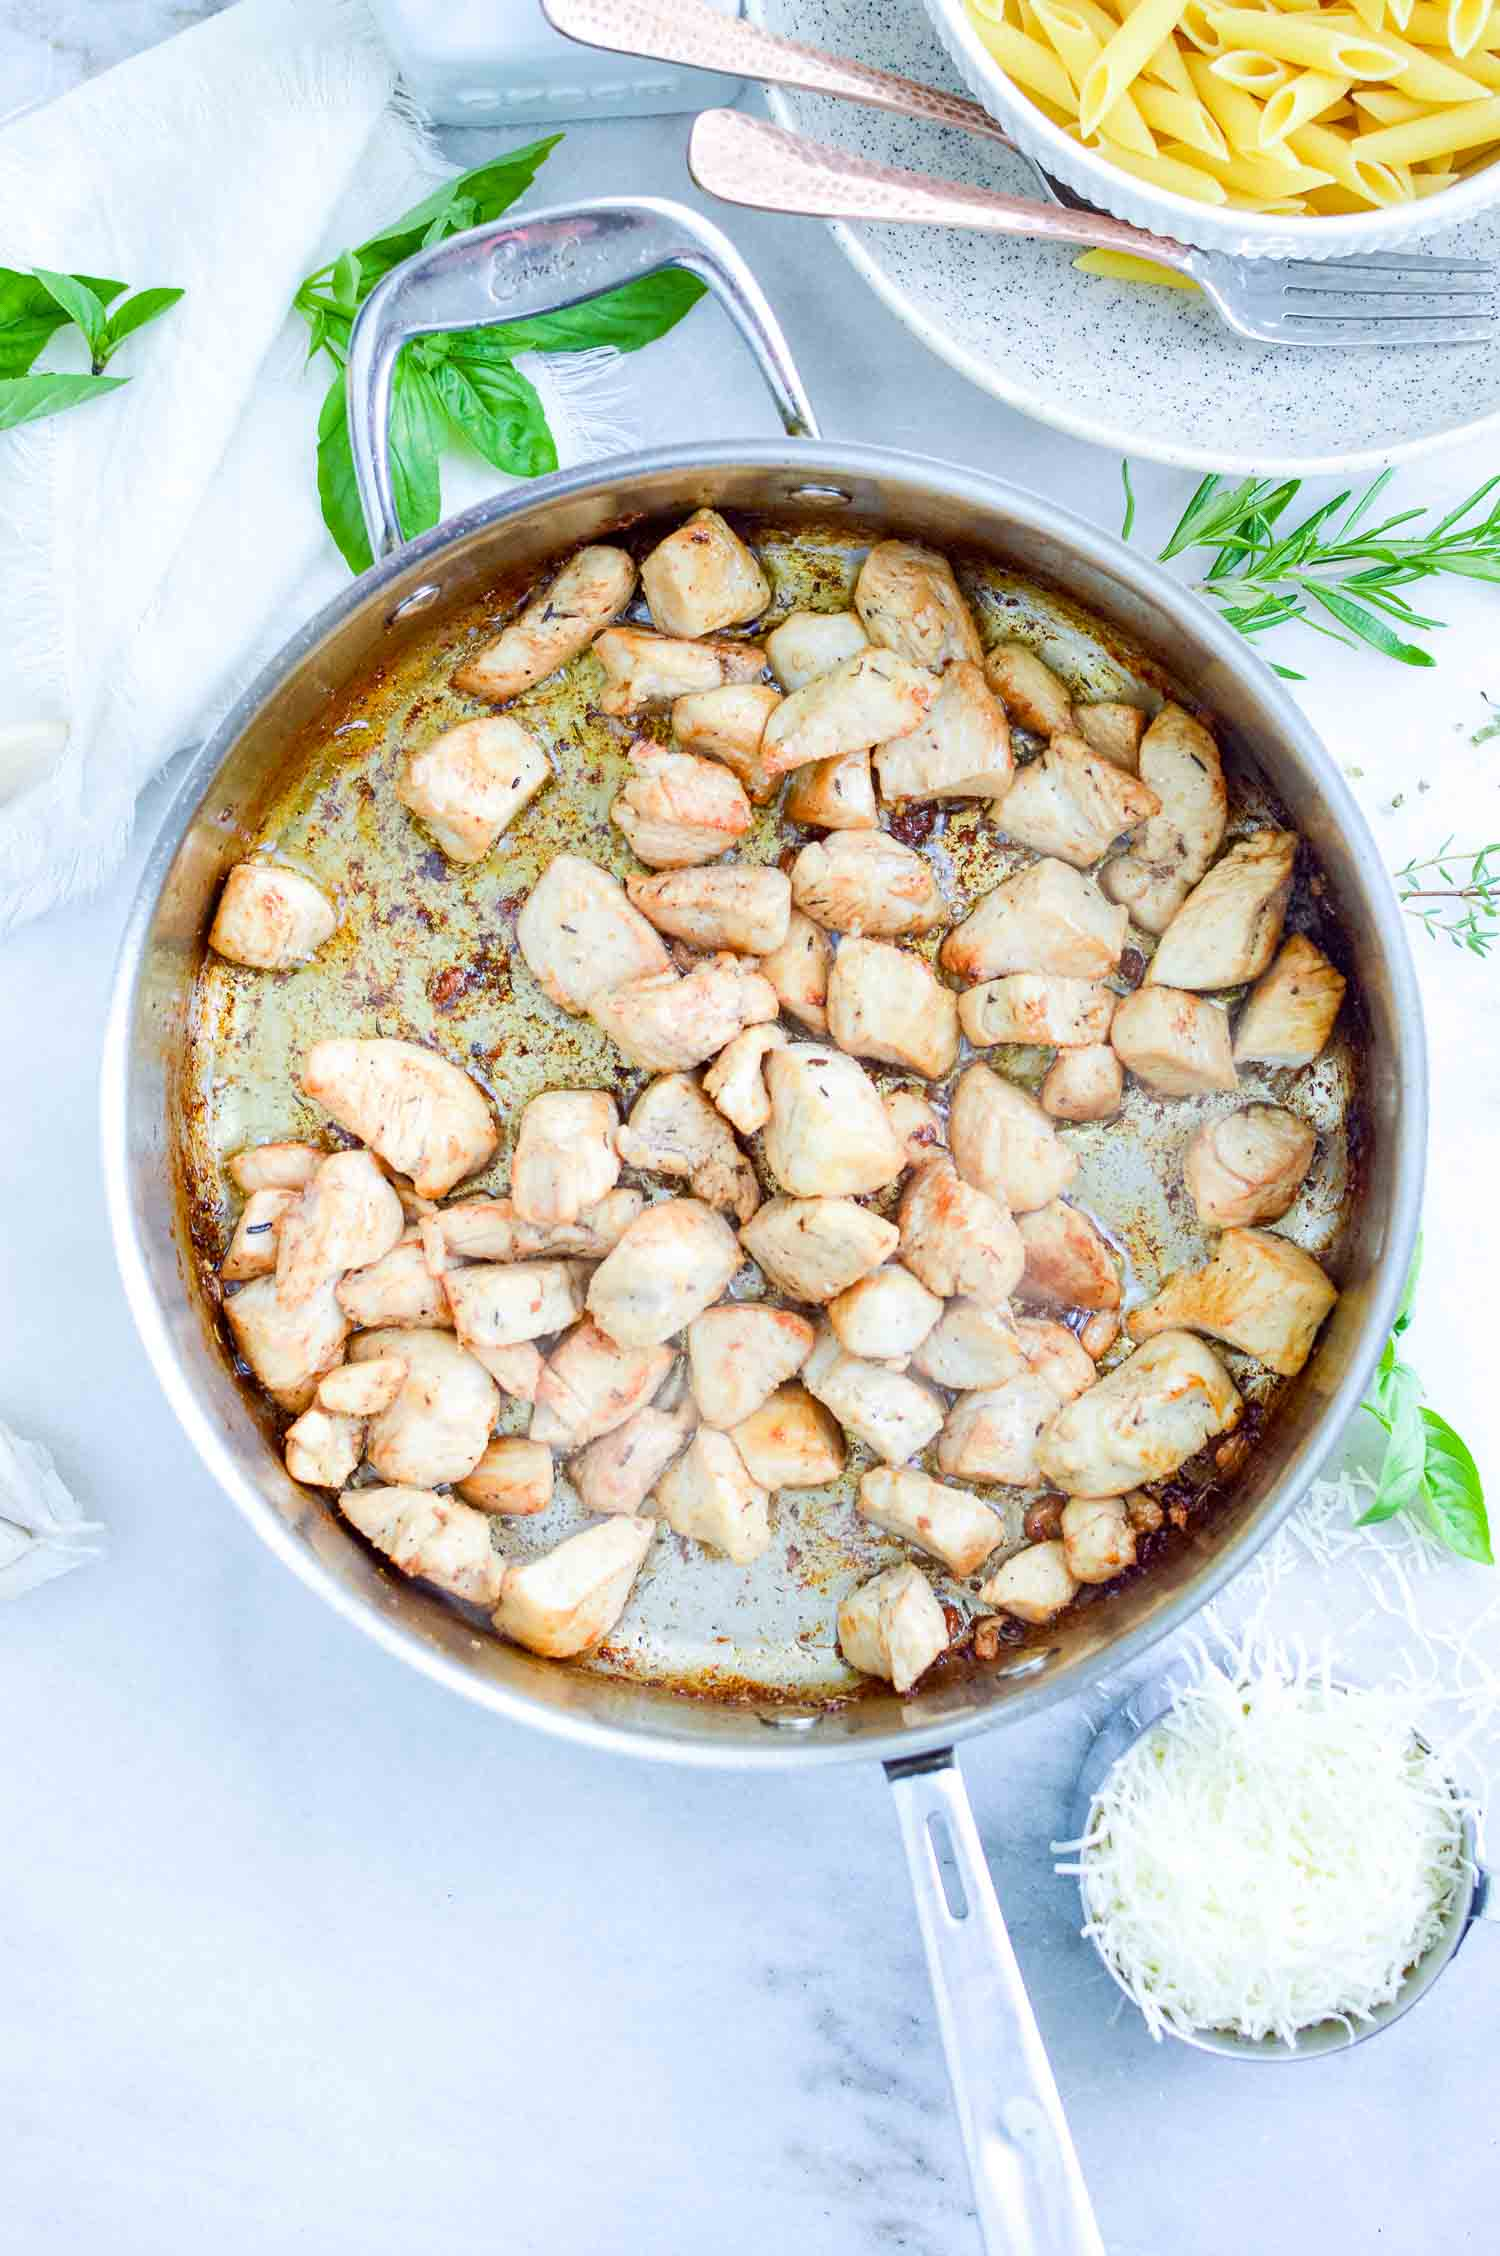 A silver pan with cooked cut chicken in it with fresh herbs around it and also a silver cup of shredded cheese.